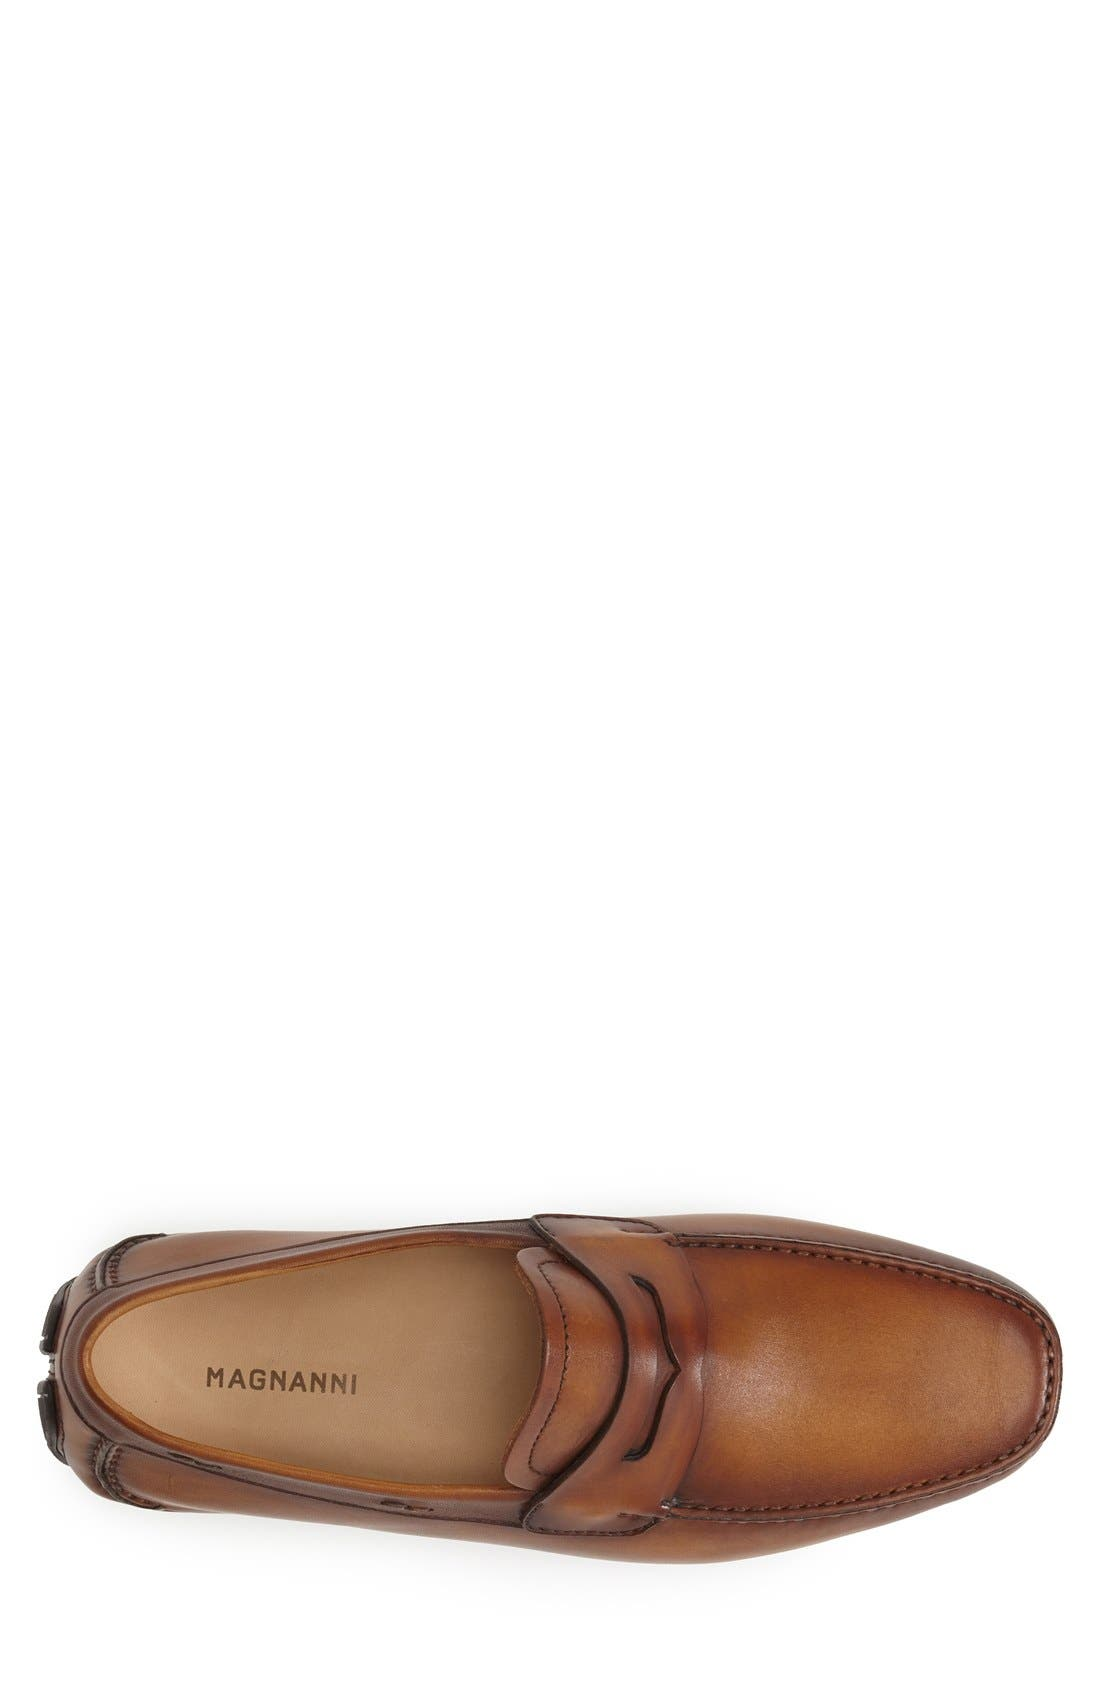 'Dylan' Leather Driving Shoe,                             Alternate thumbnail 16, color,